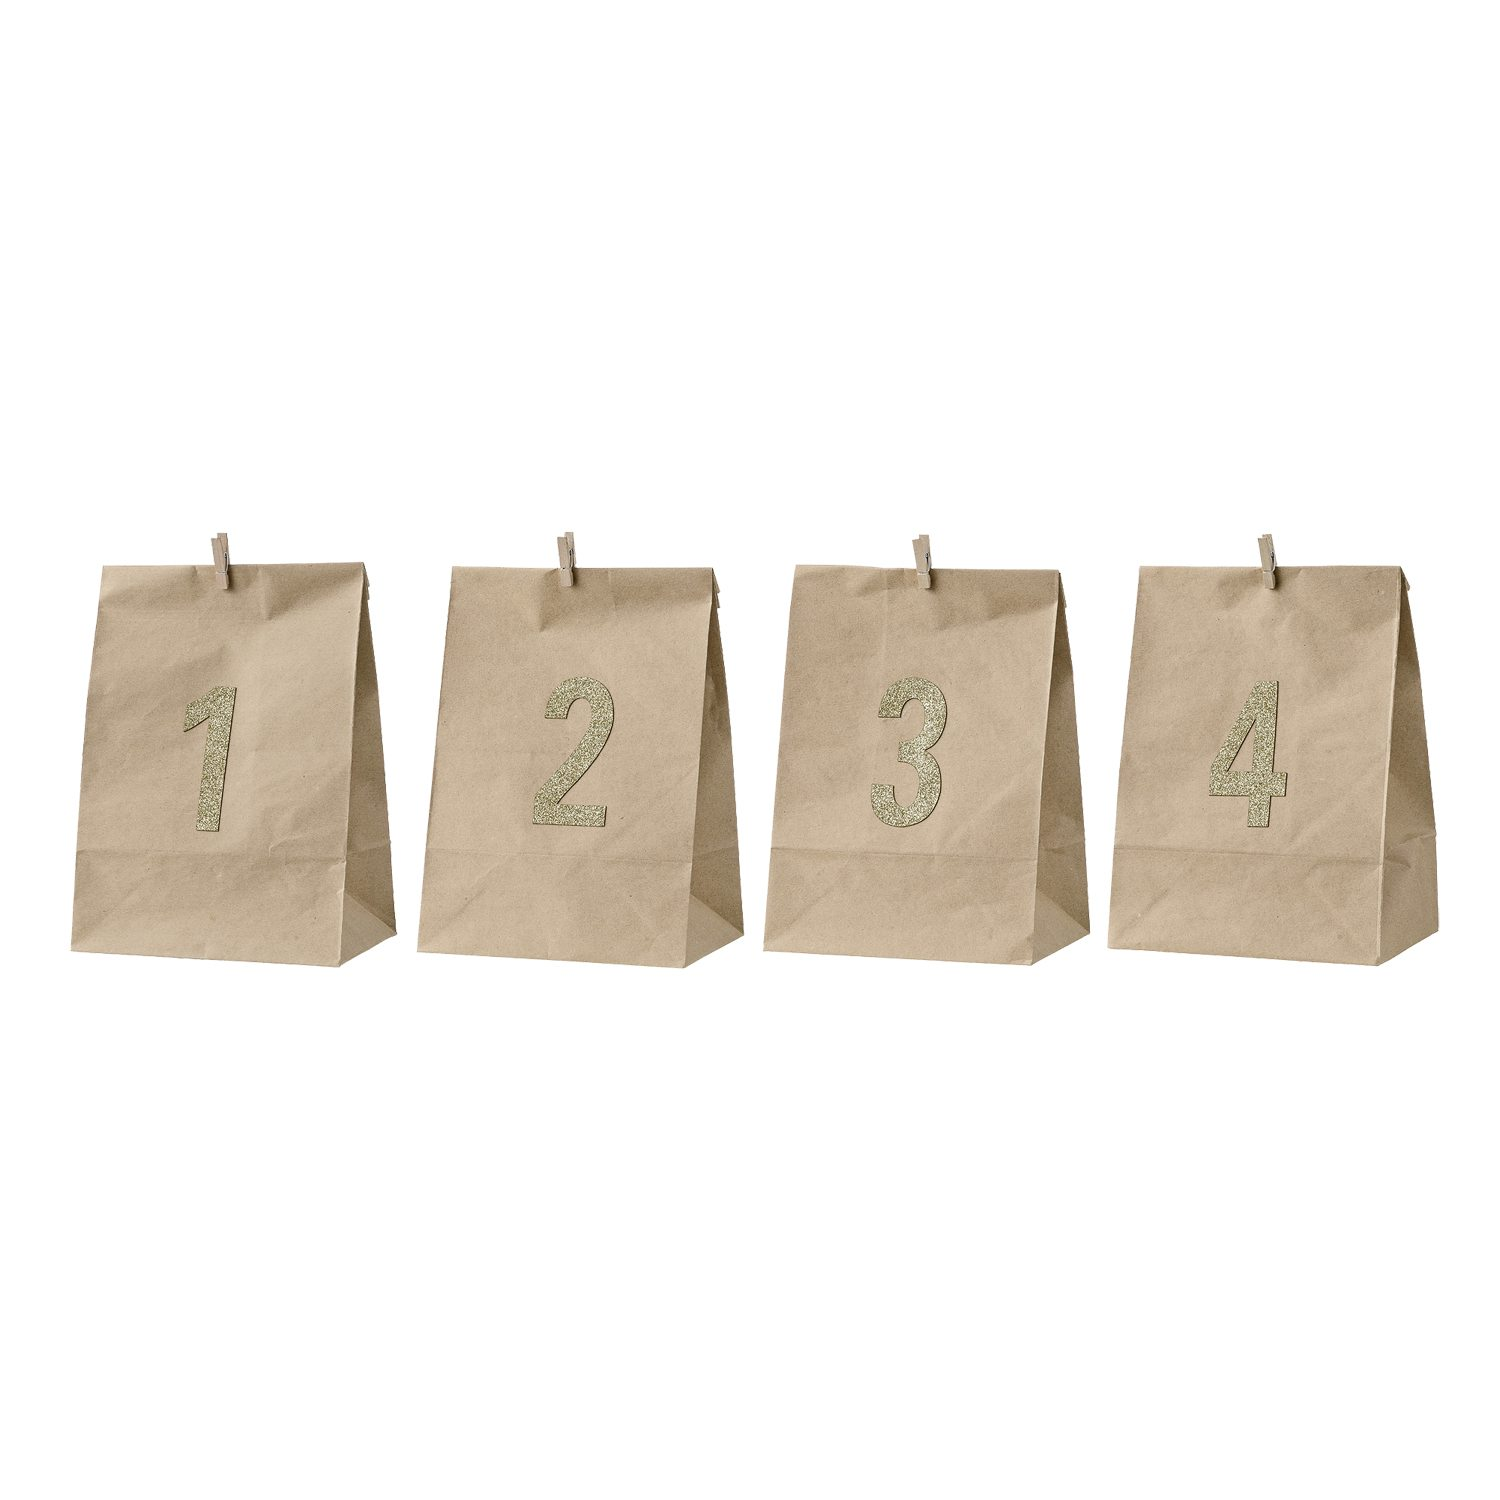 Advent papperspåse 4-pack, natur